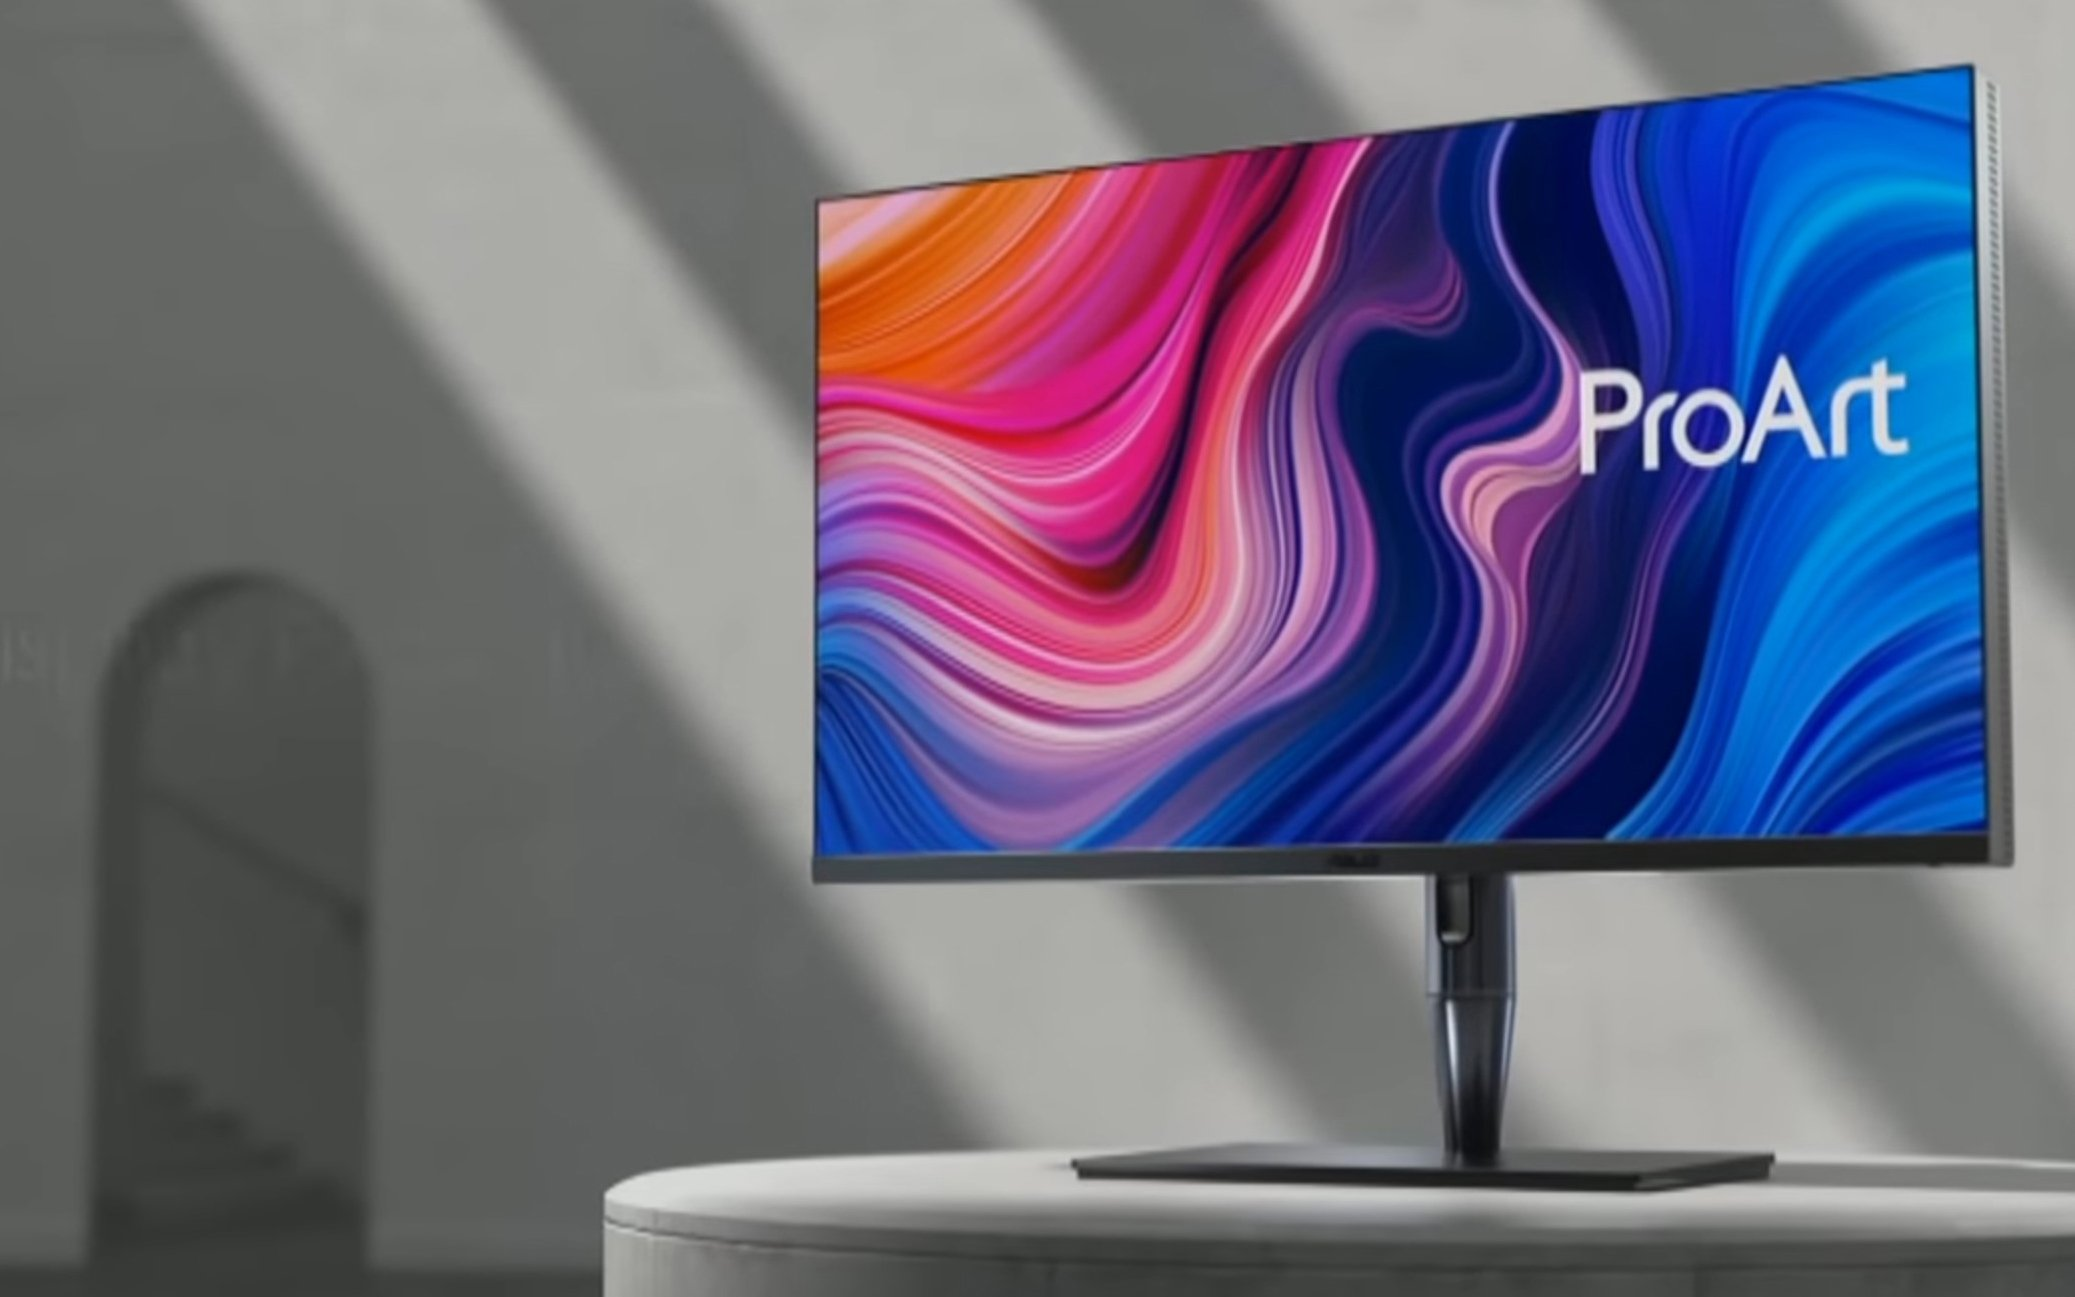 ASUS' New 1600-nit 4K ProArt Display Challenges Apple's Pro Display XDR